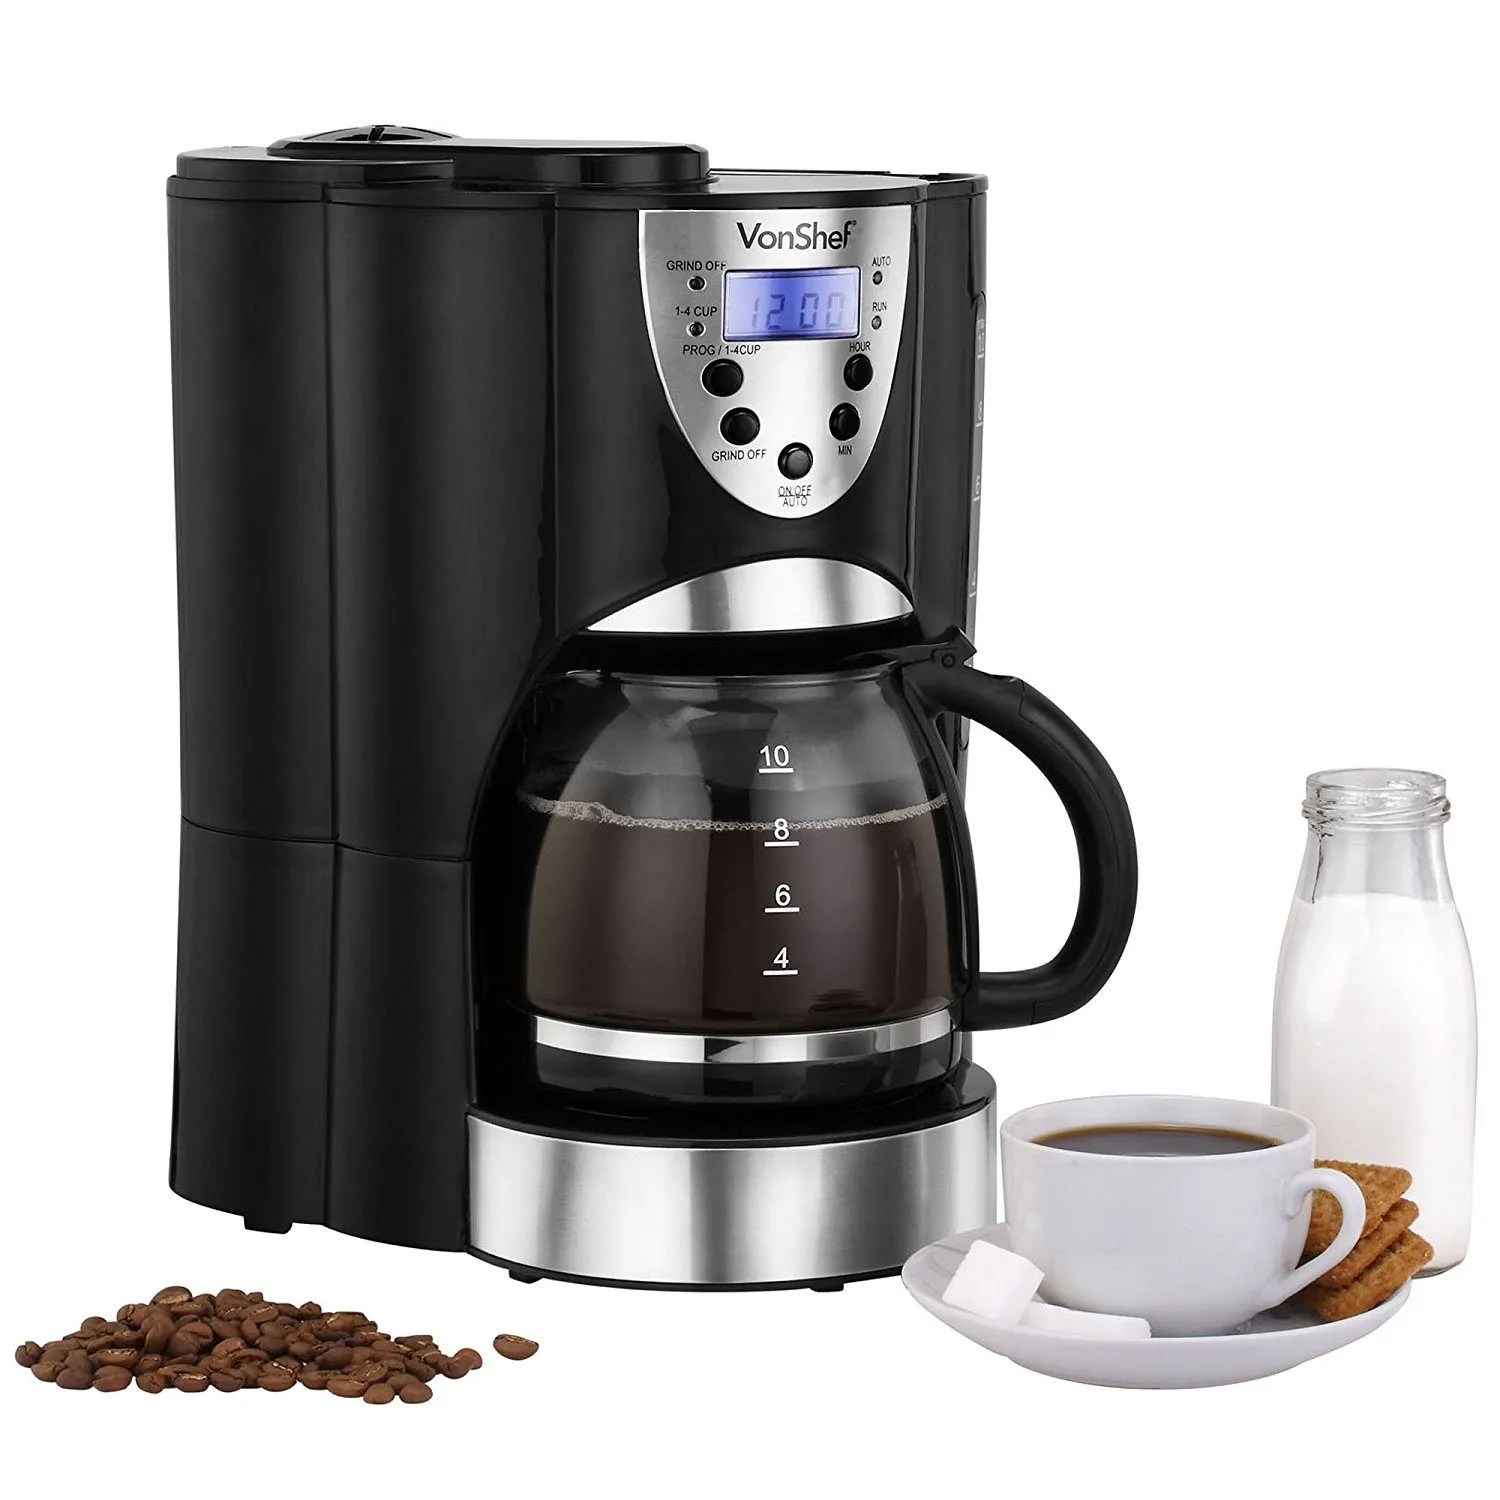 Vonshef Digital Filter Coffee Maker Uk Review 2019 The Perfect Grind